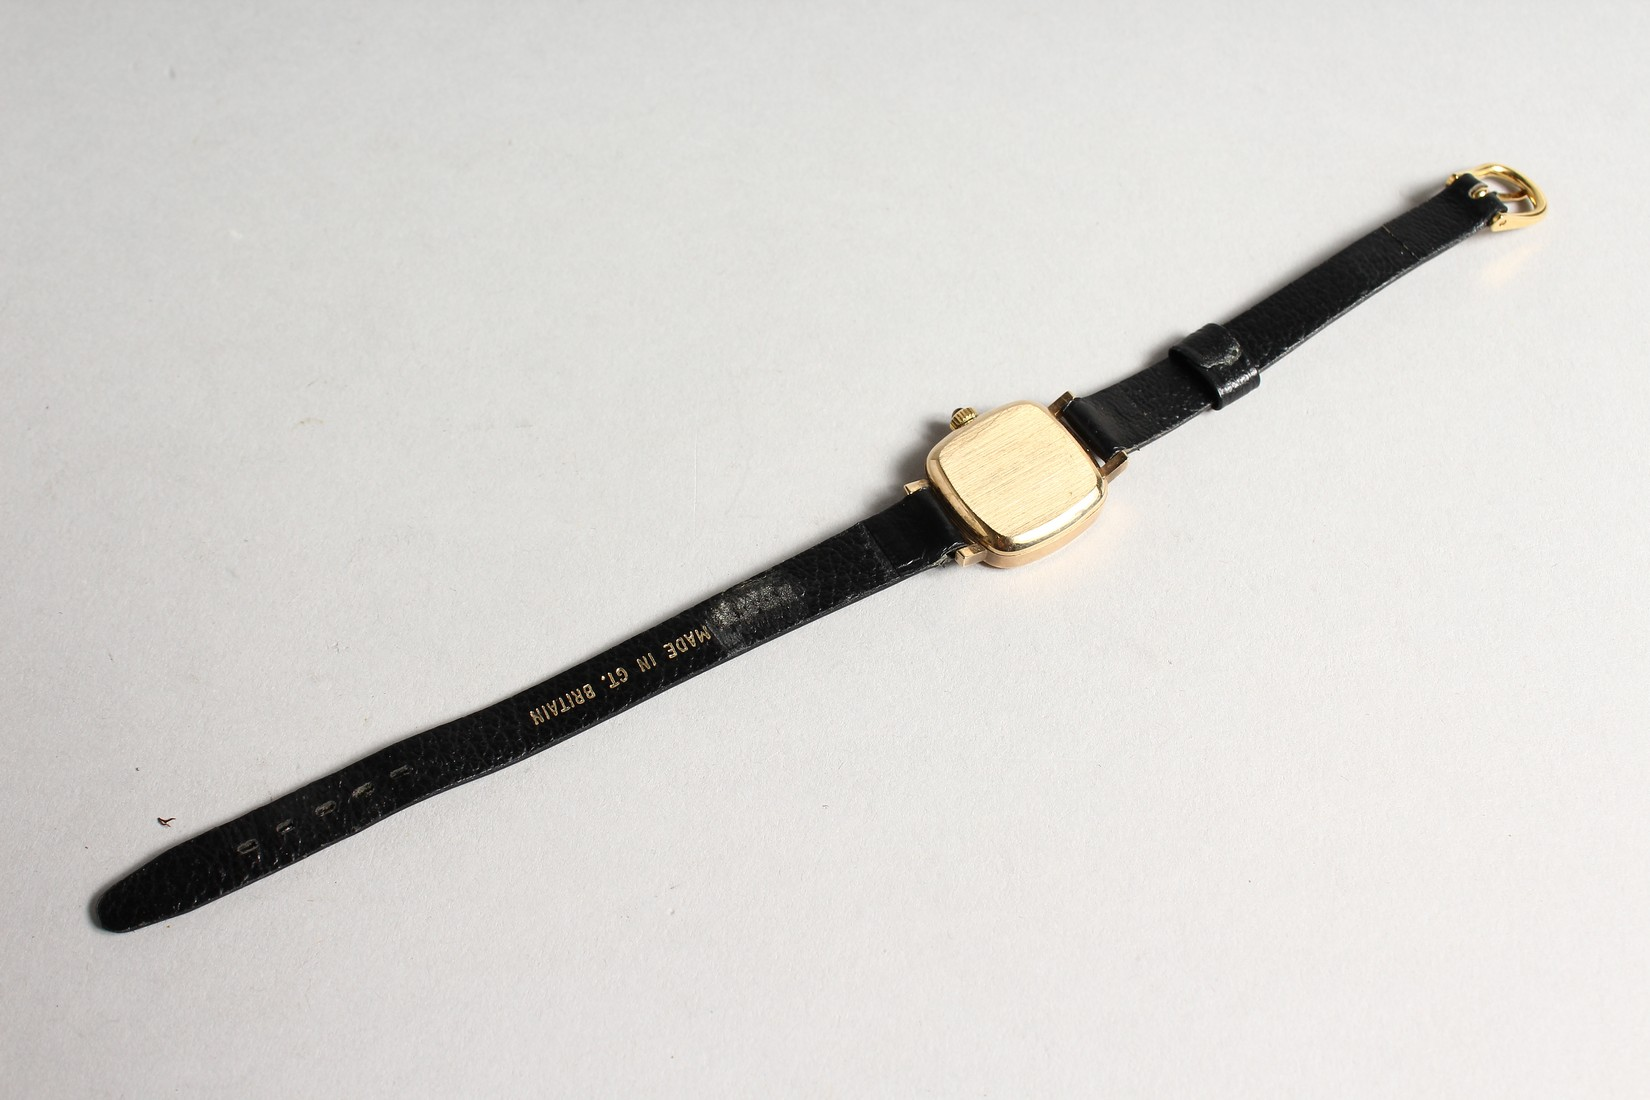 A LADIES VERY GOOD GOLD OMEGA WRIST WATCH with leather strap. - Image 3 of 4